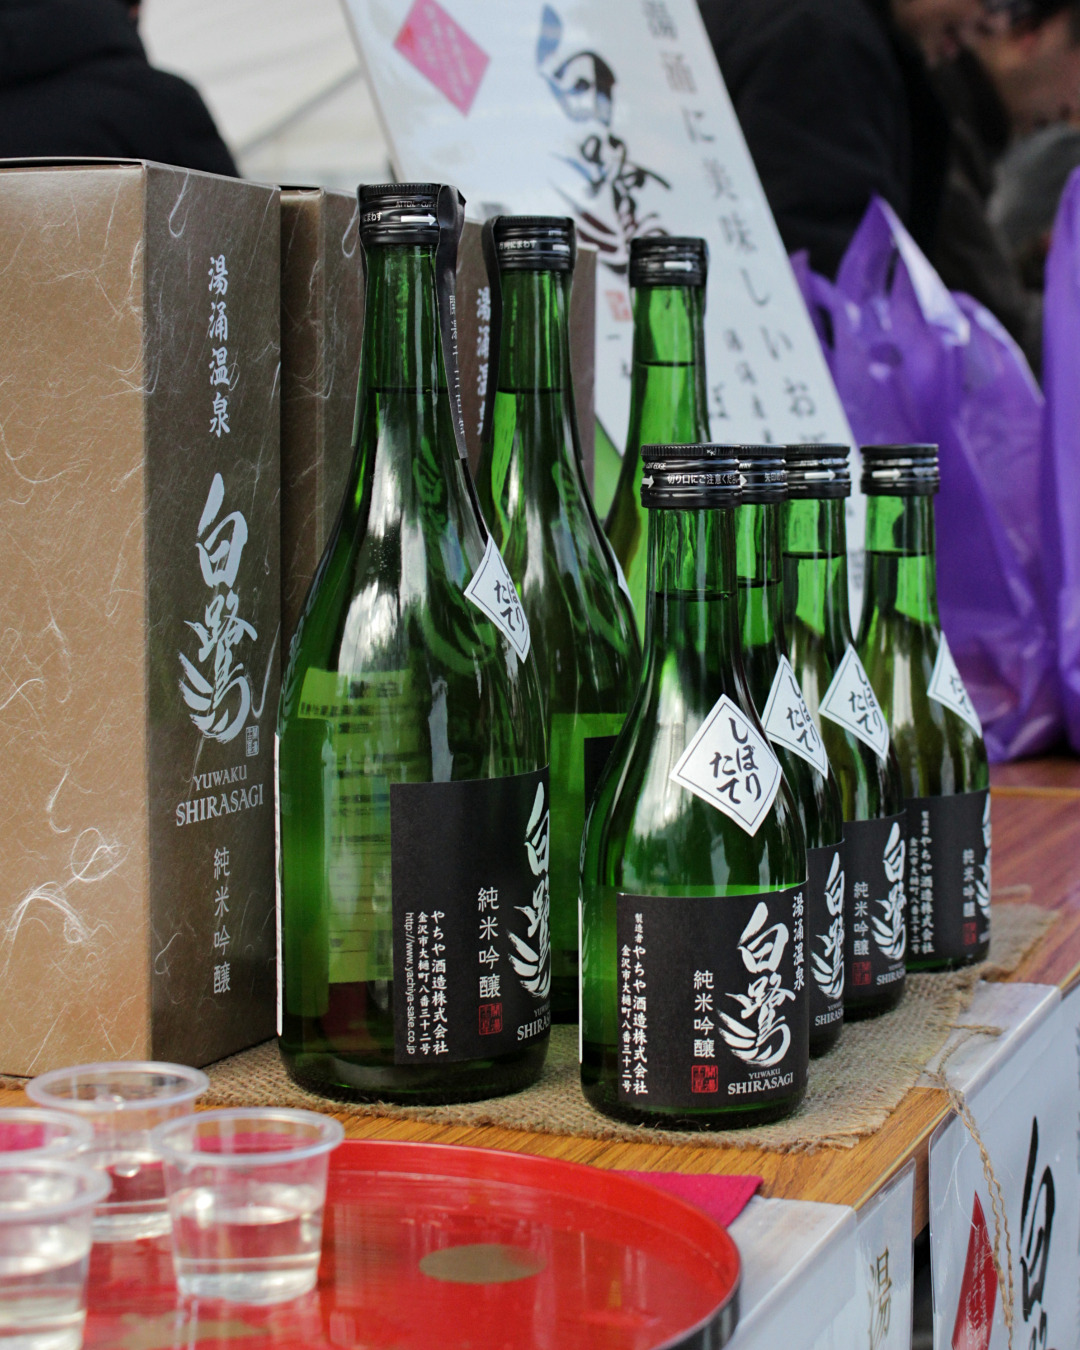 Shirasagi Sake, specially made in Yuwaku Onsen and featured in the town's festivals in Kanazawa, Japan